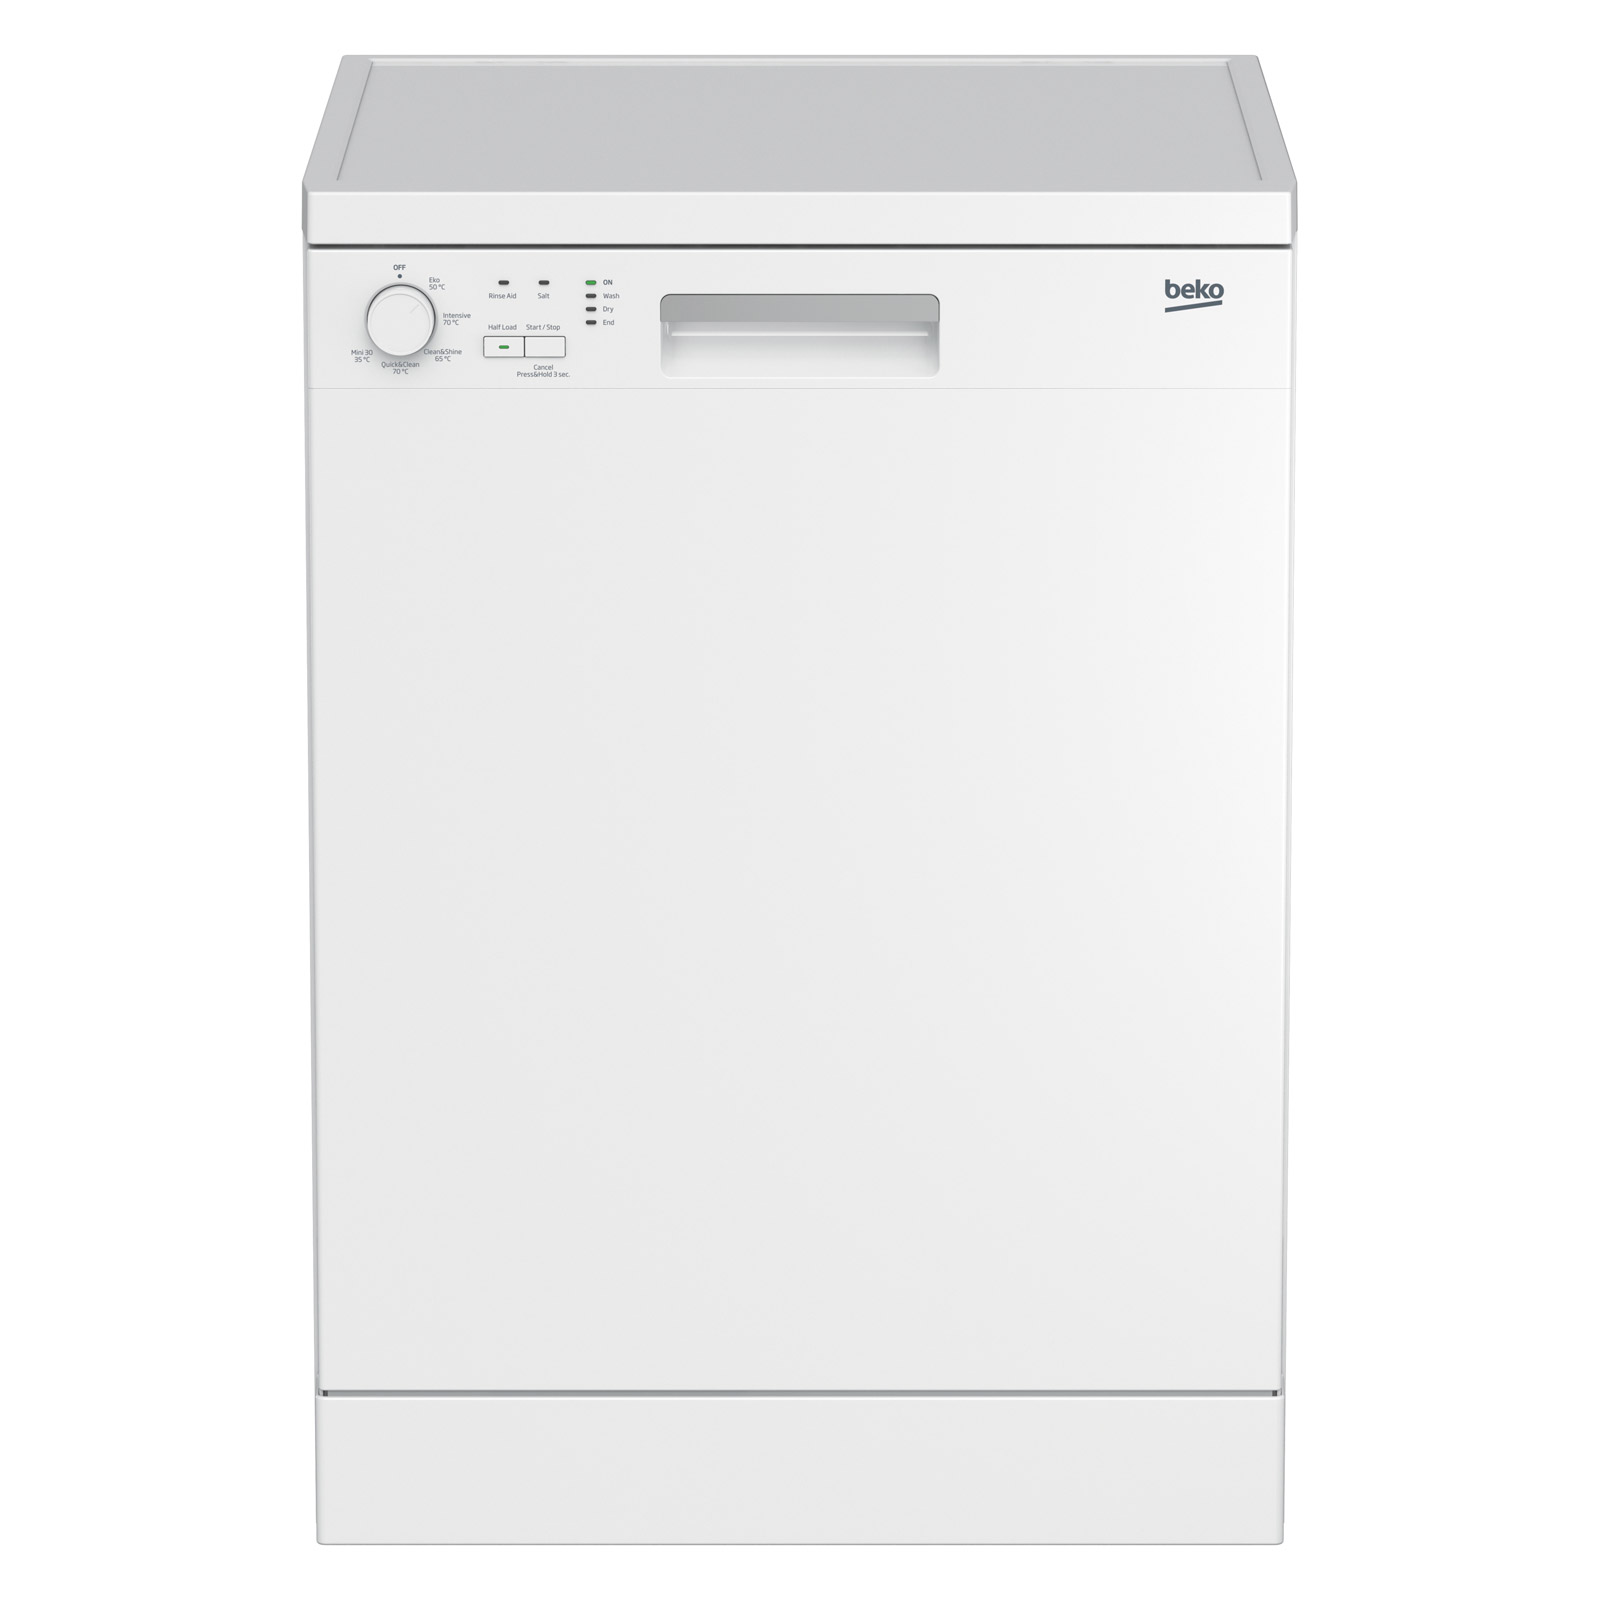 1039c6da8c8 Beko DFN05X10W 60cm Dishwasher in White, 12 Place Setting A+ Rated